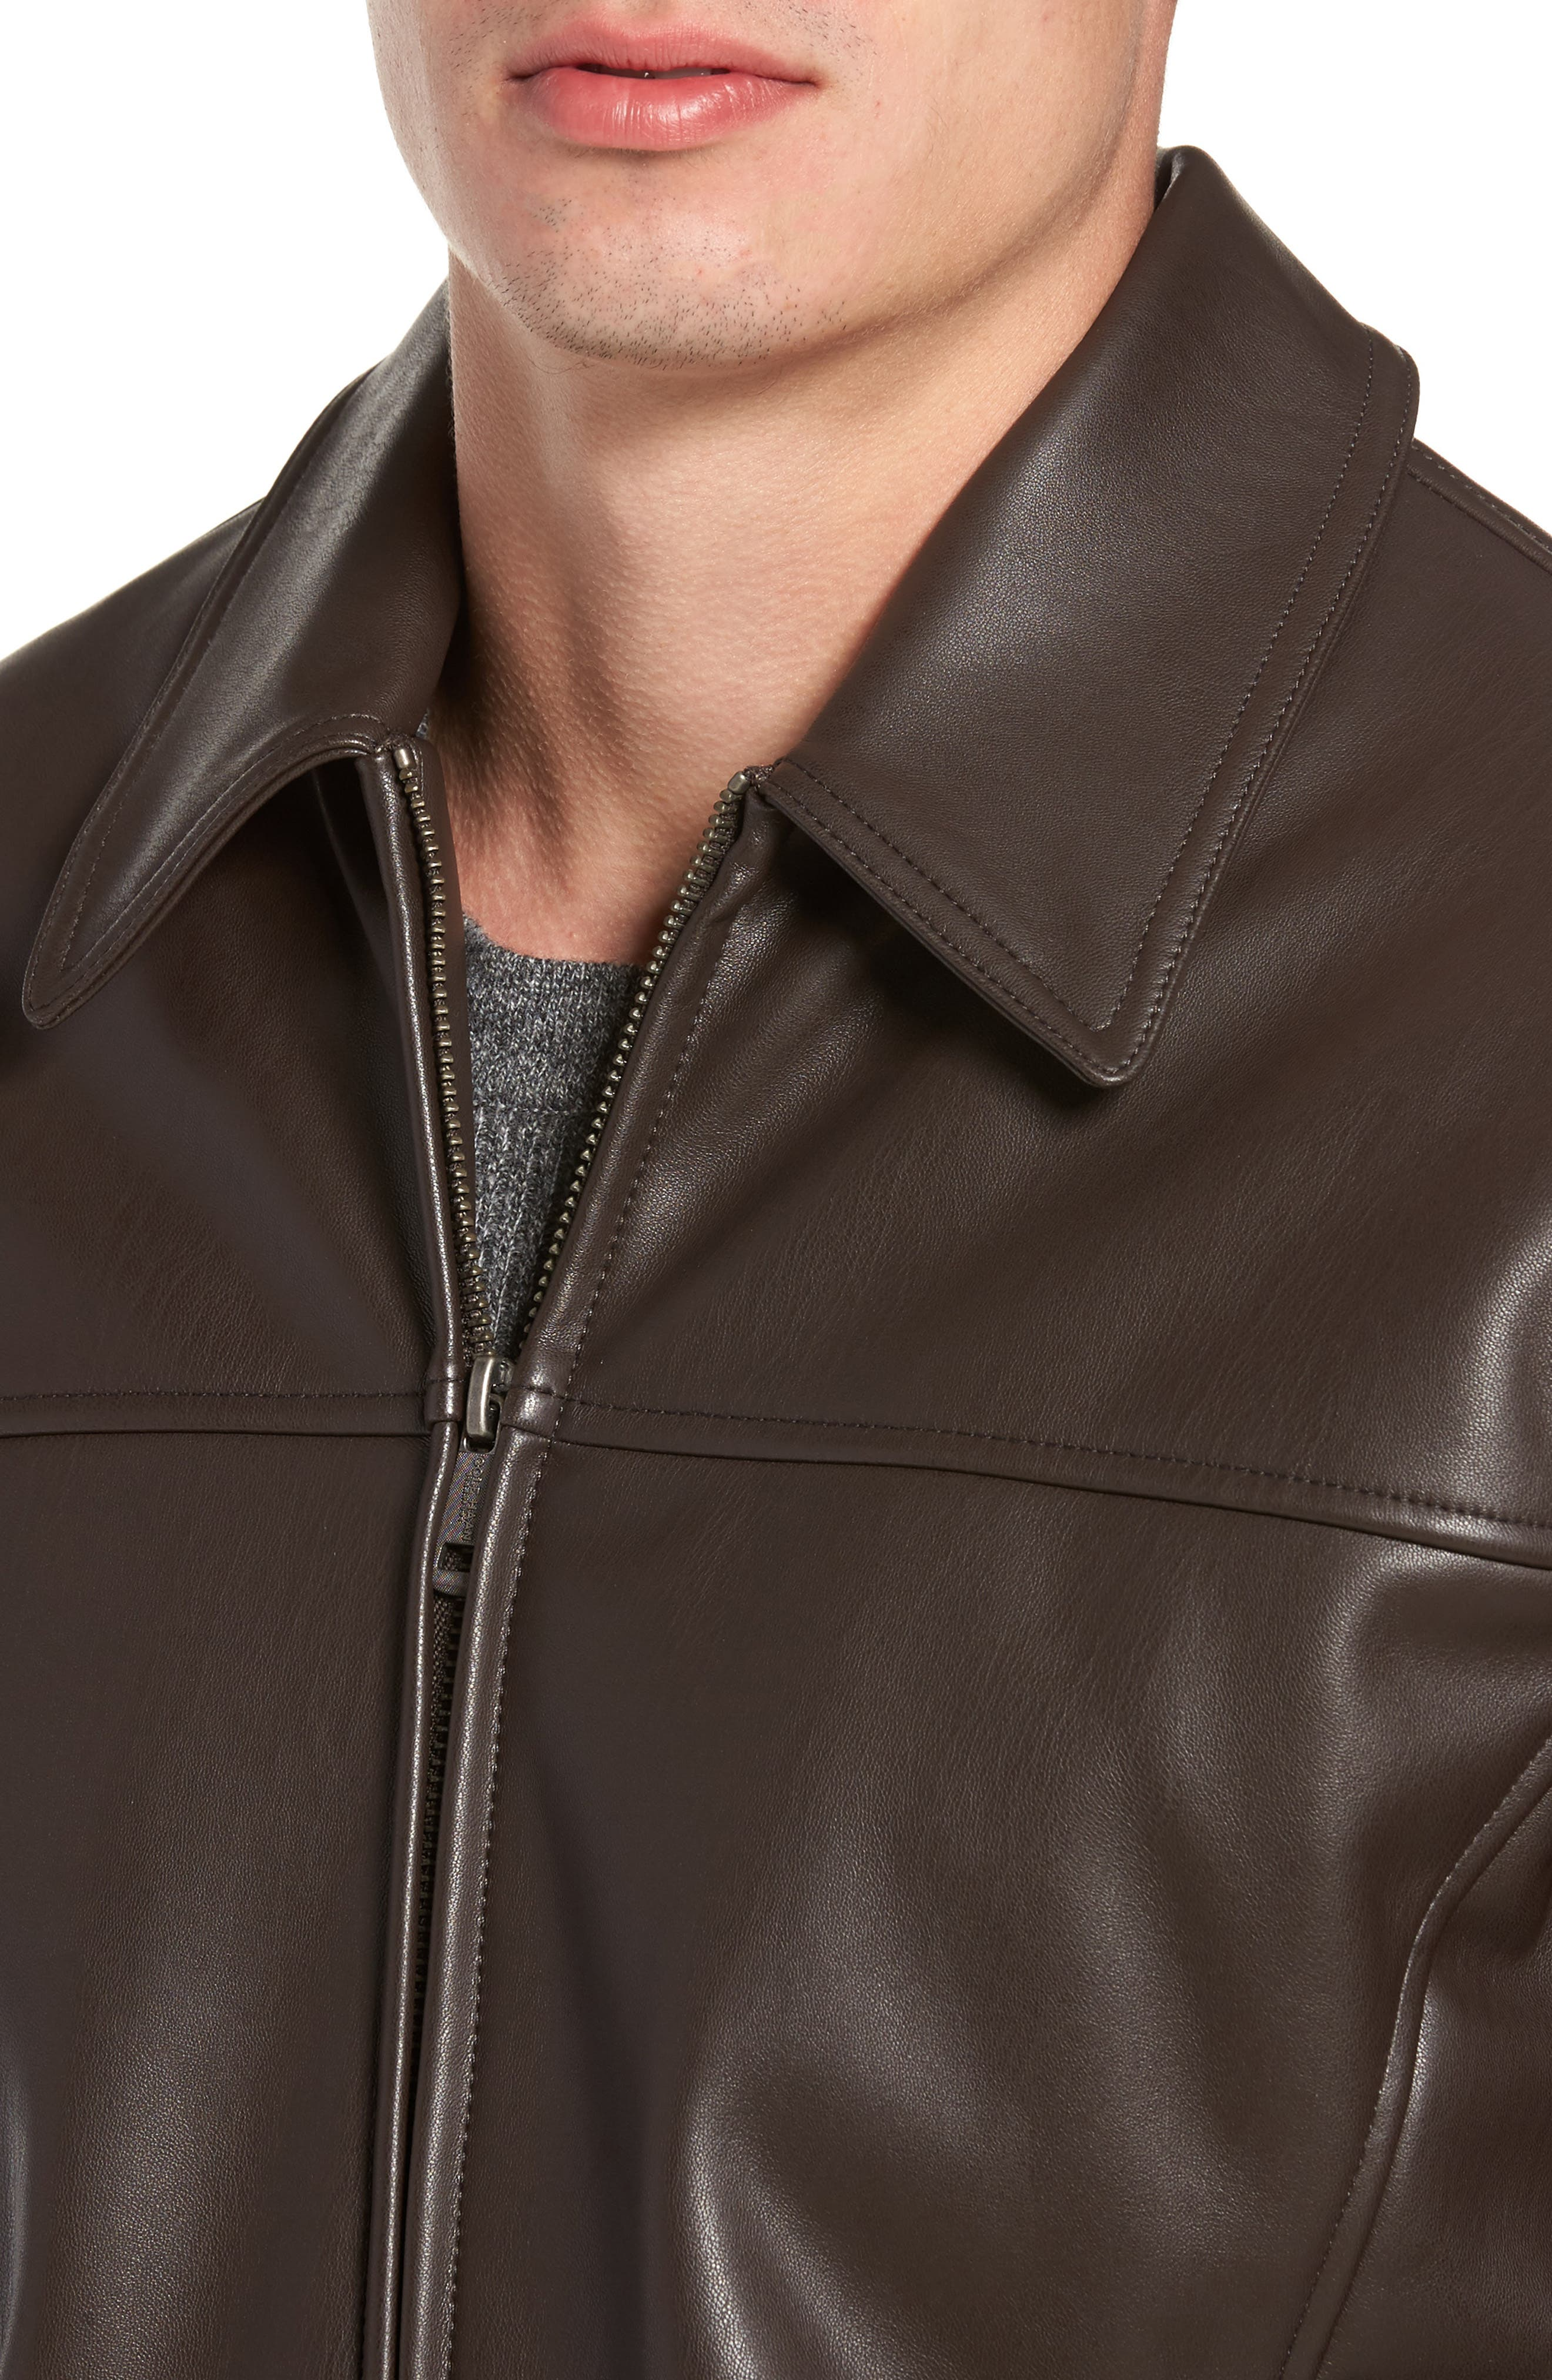 Collared Open Bottom Faux Leather Jacket,                             Alternate thumbnail 4, color,                             Dark Brown